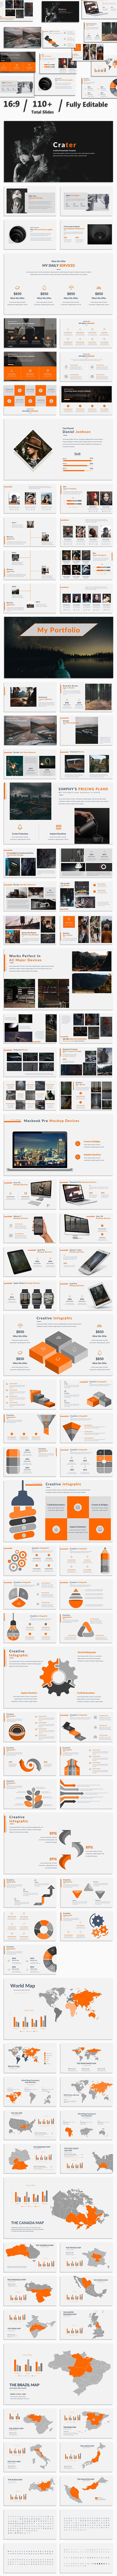 Crater Multipurpose Keynote Template — Keynote KEY #pitch deck #report • Available here → https://graphicriver.net/item/crater-multipurpose-keynote-template/20589179?ref=pxcr